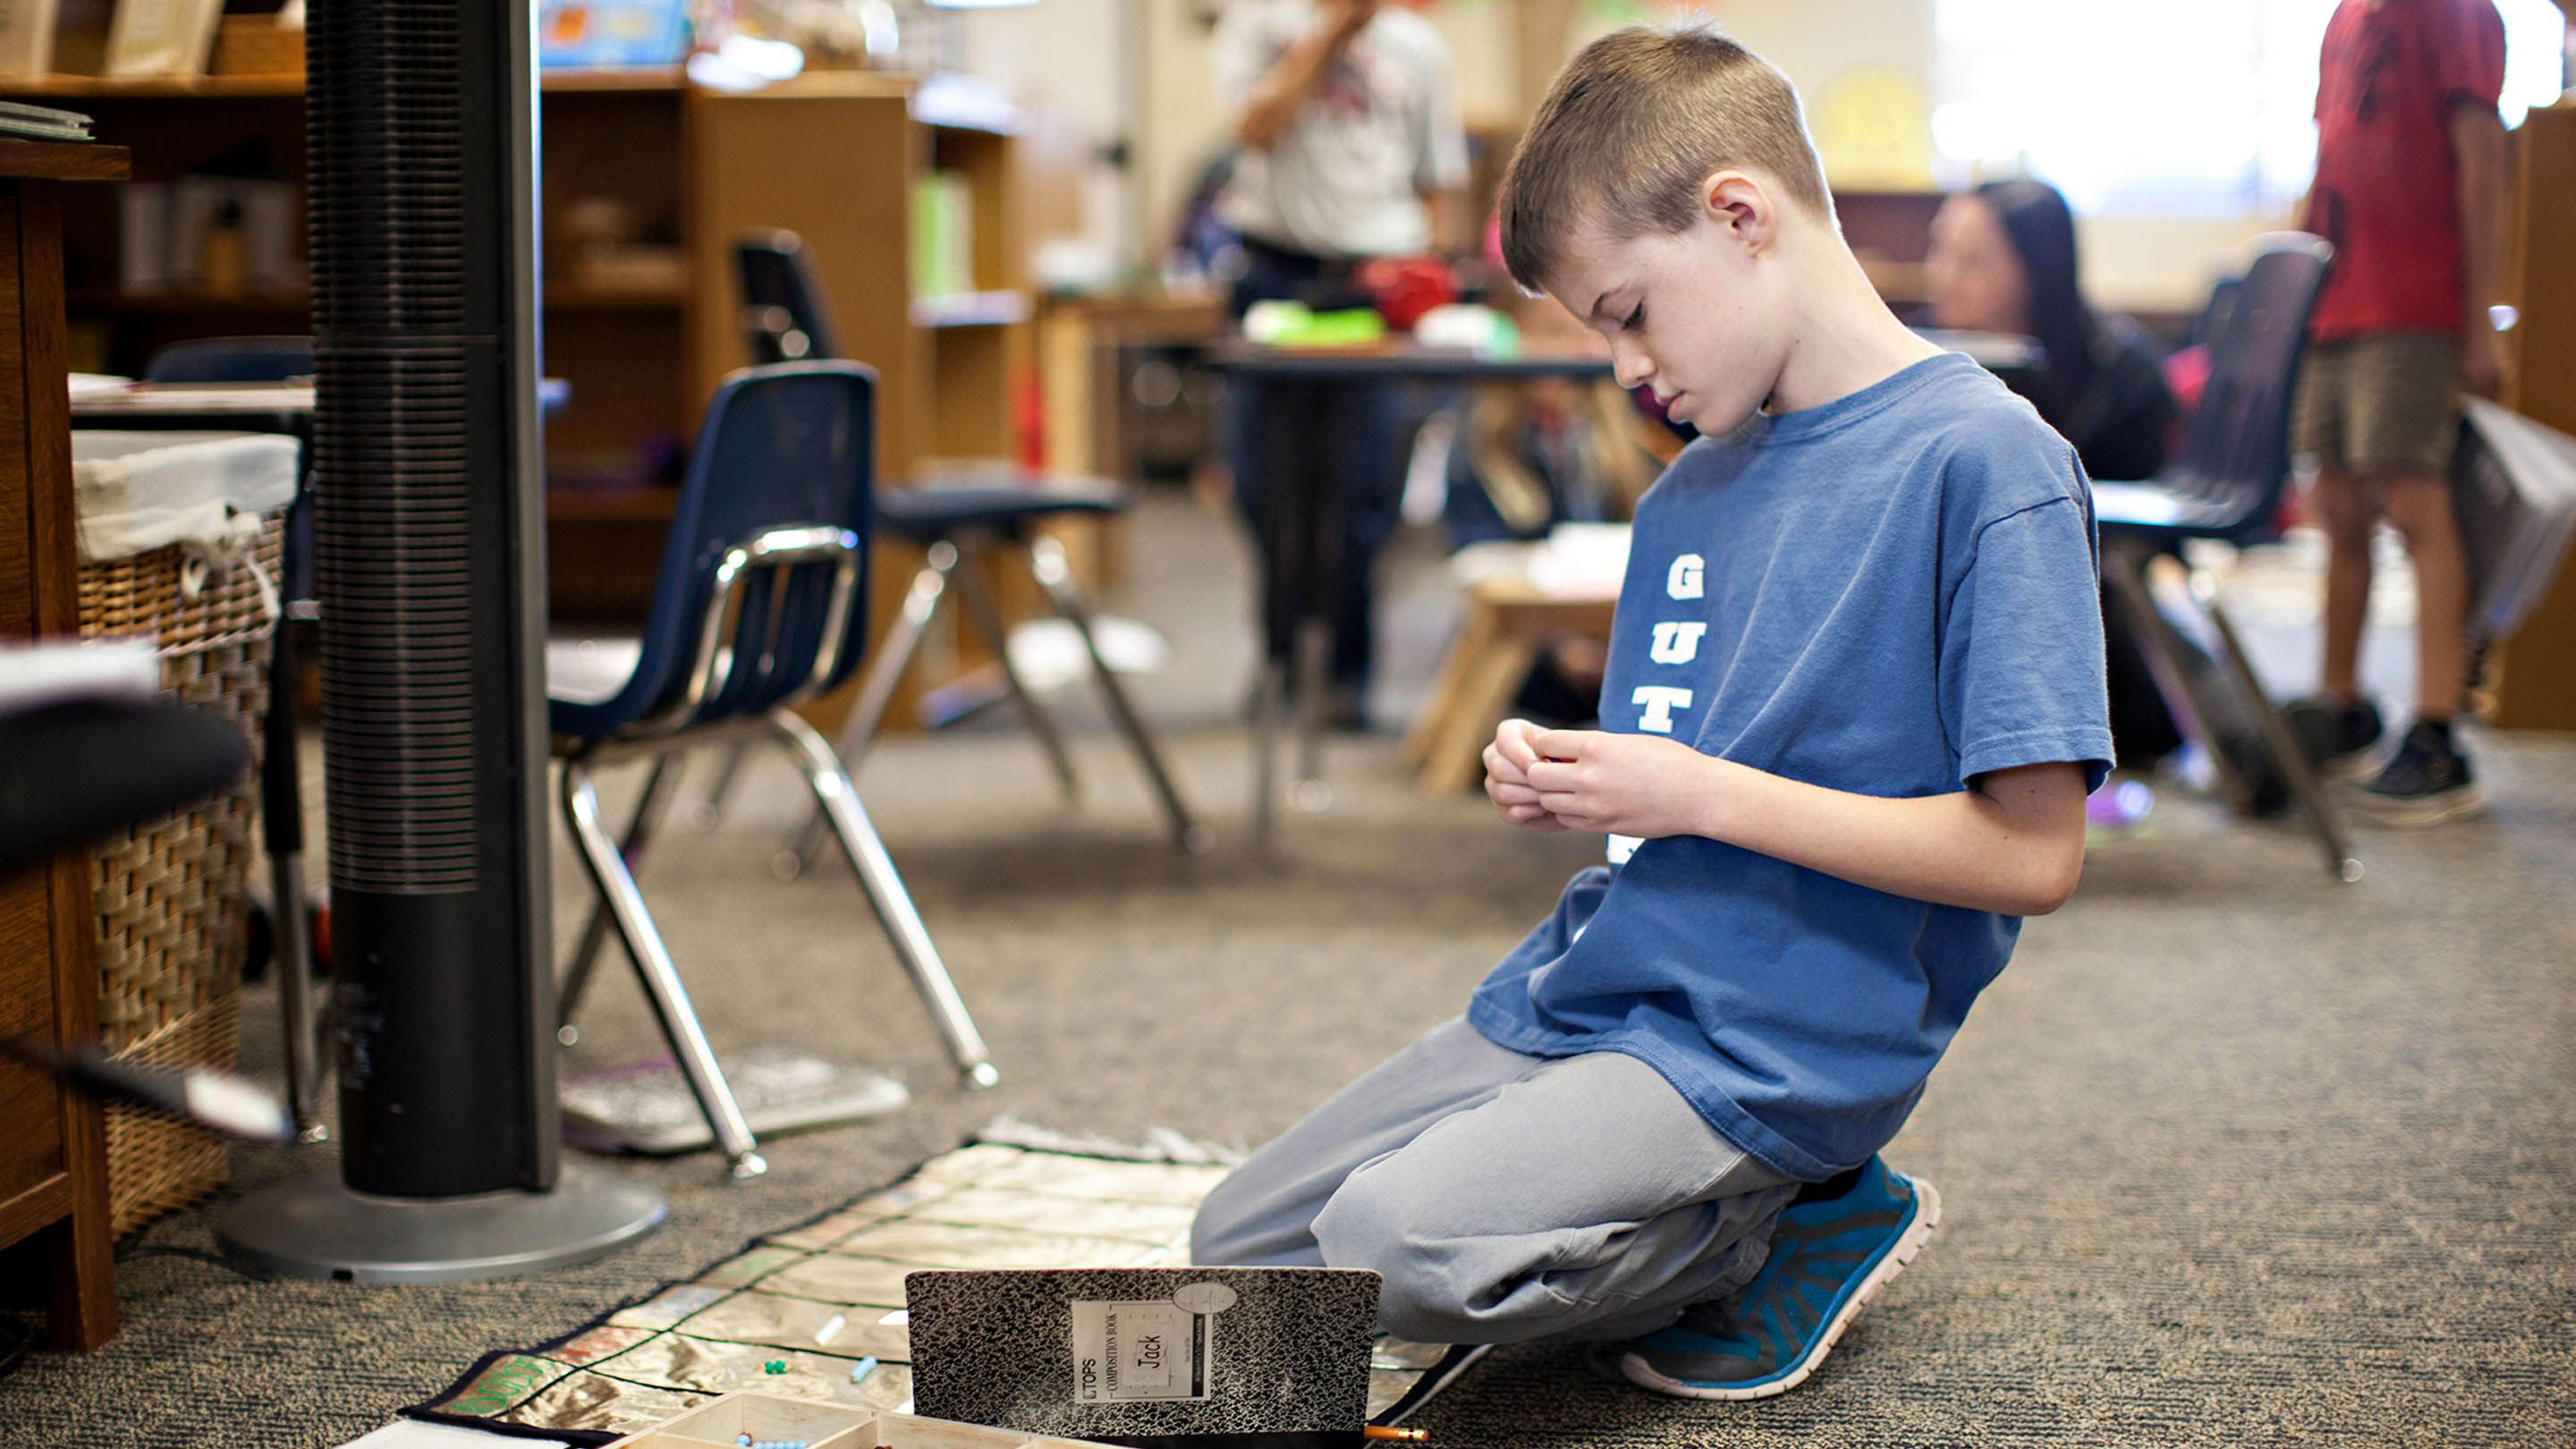 A boy works on the floor in his class.